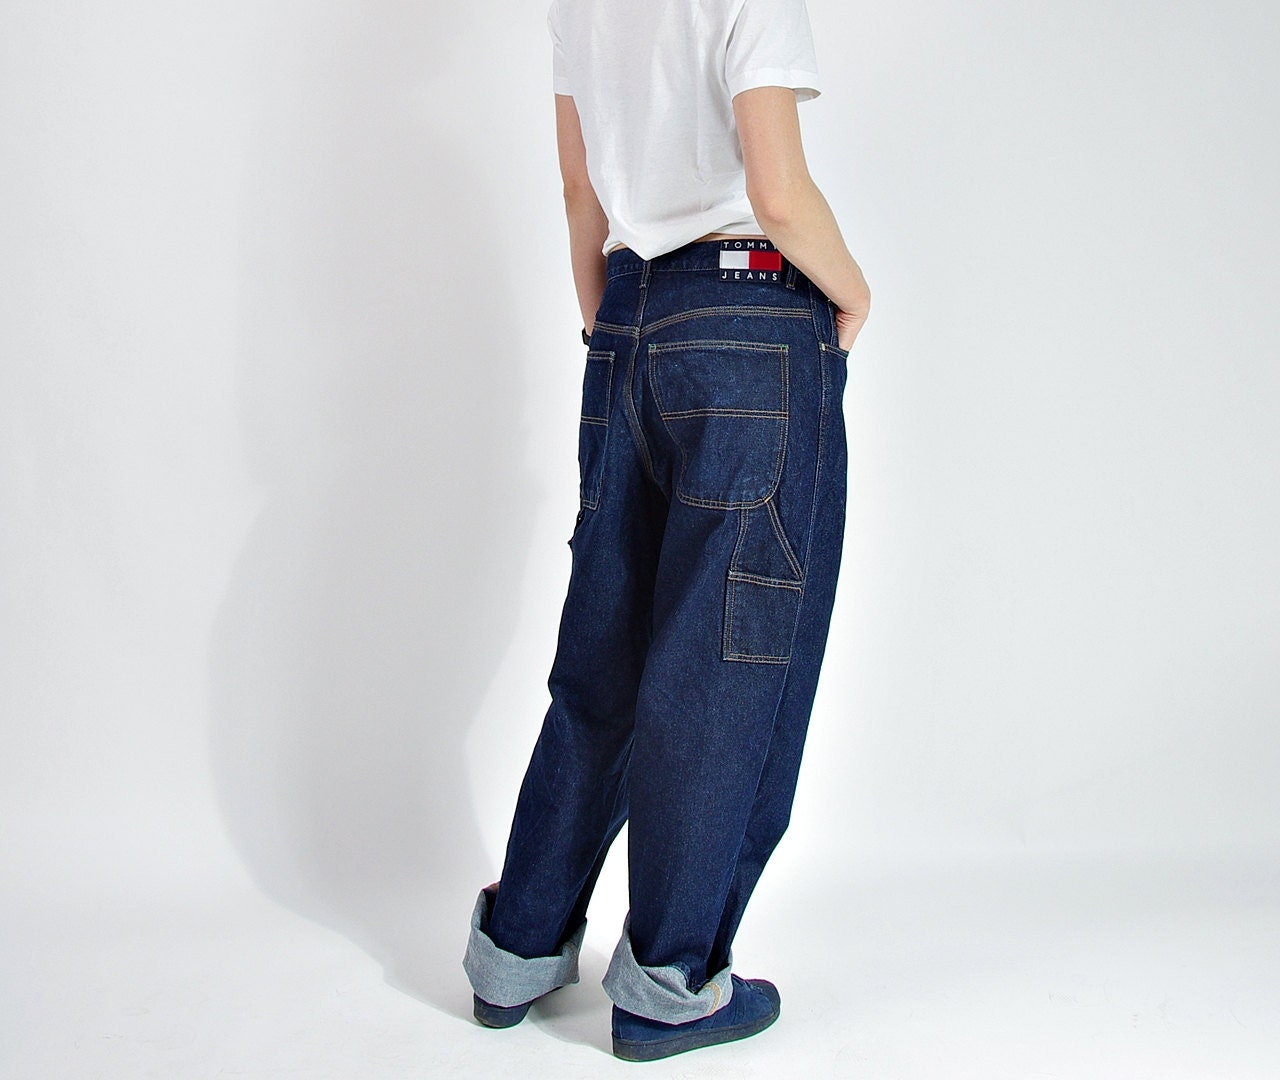 90s tommy hilfiger baggy jeans hip hop rap style american